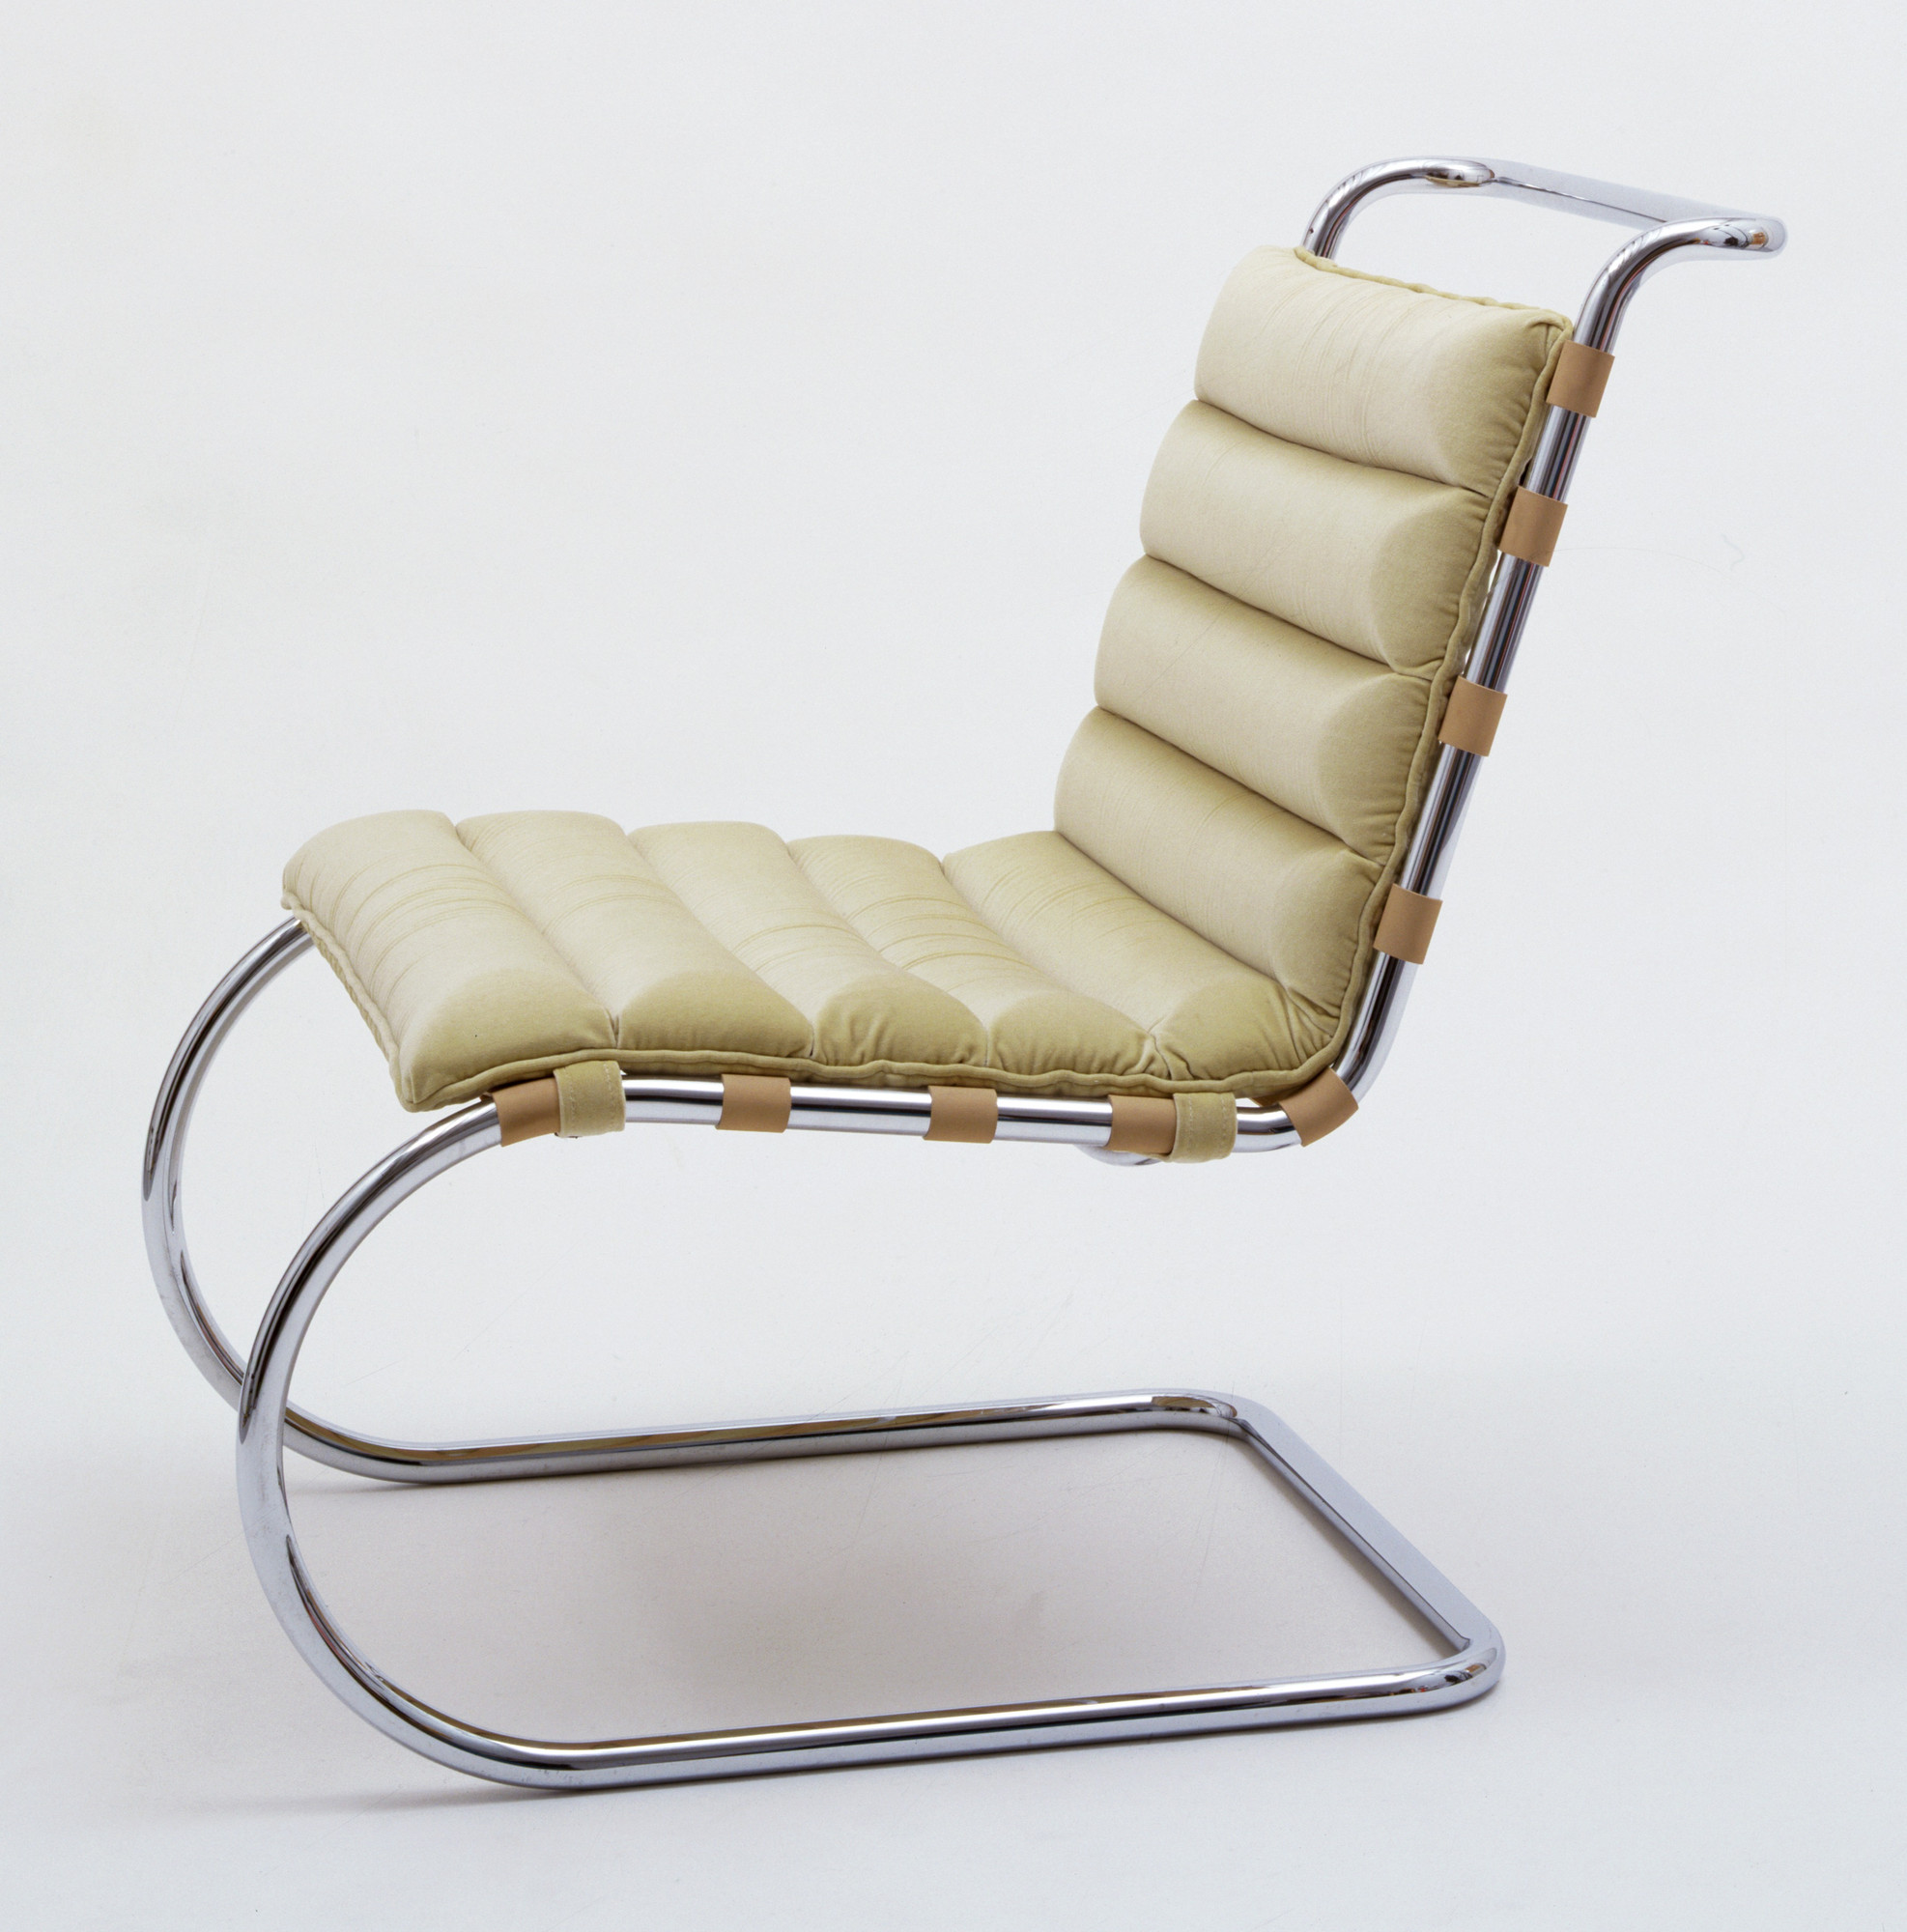 Strange Ludwig Mies Van Der Rohe Mr Lounge Chair Model 34 Squirreltailoven Fun Painted Chair Ideas Images Squirreltailovenorg